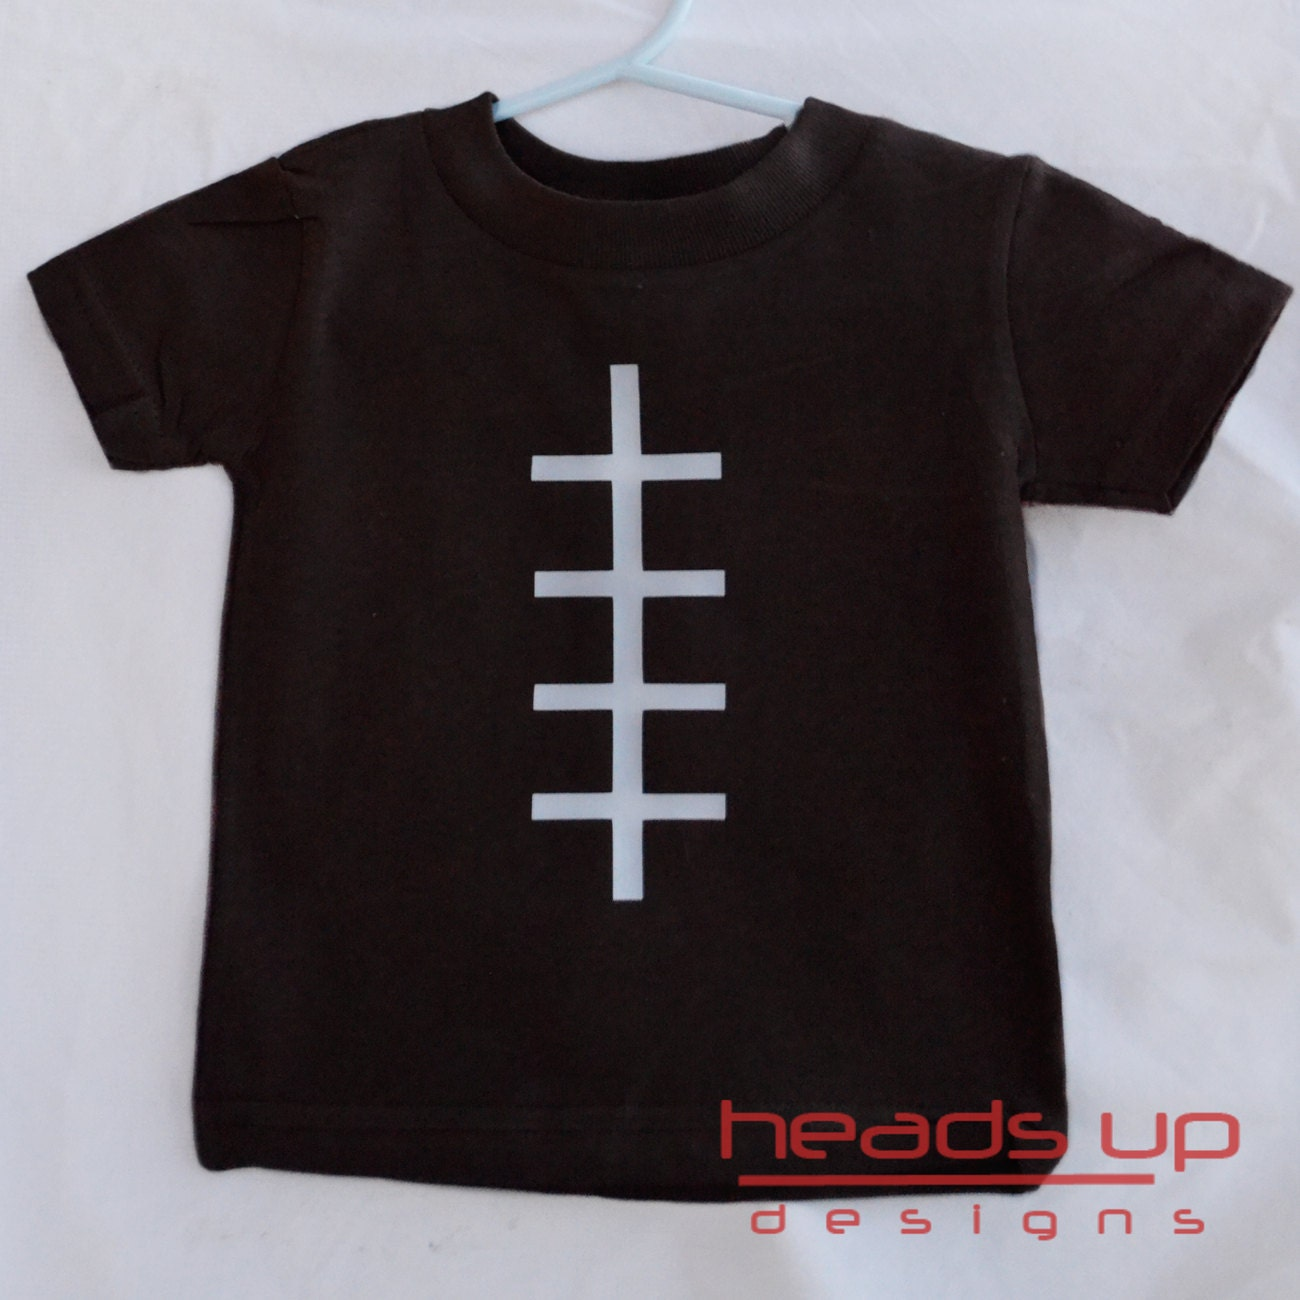 Football coaches shirts images for Soccer coach polo shirt